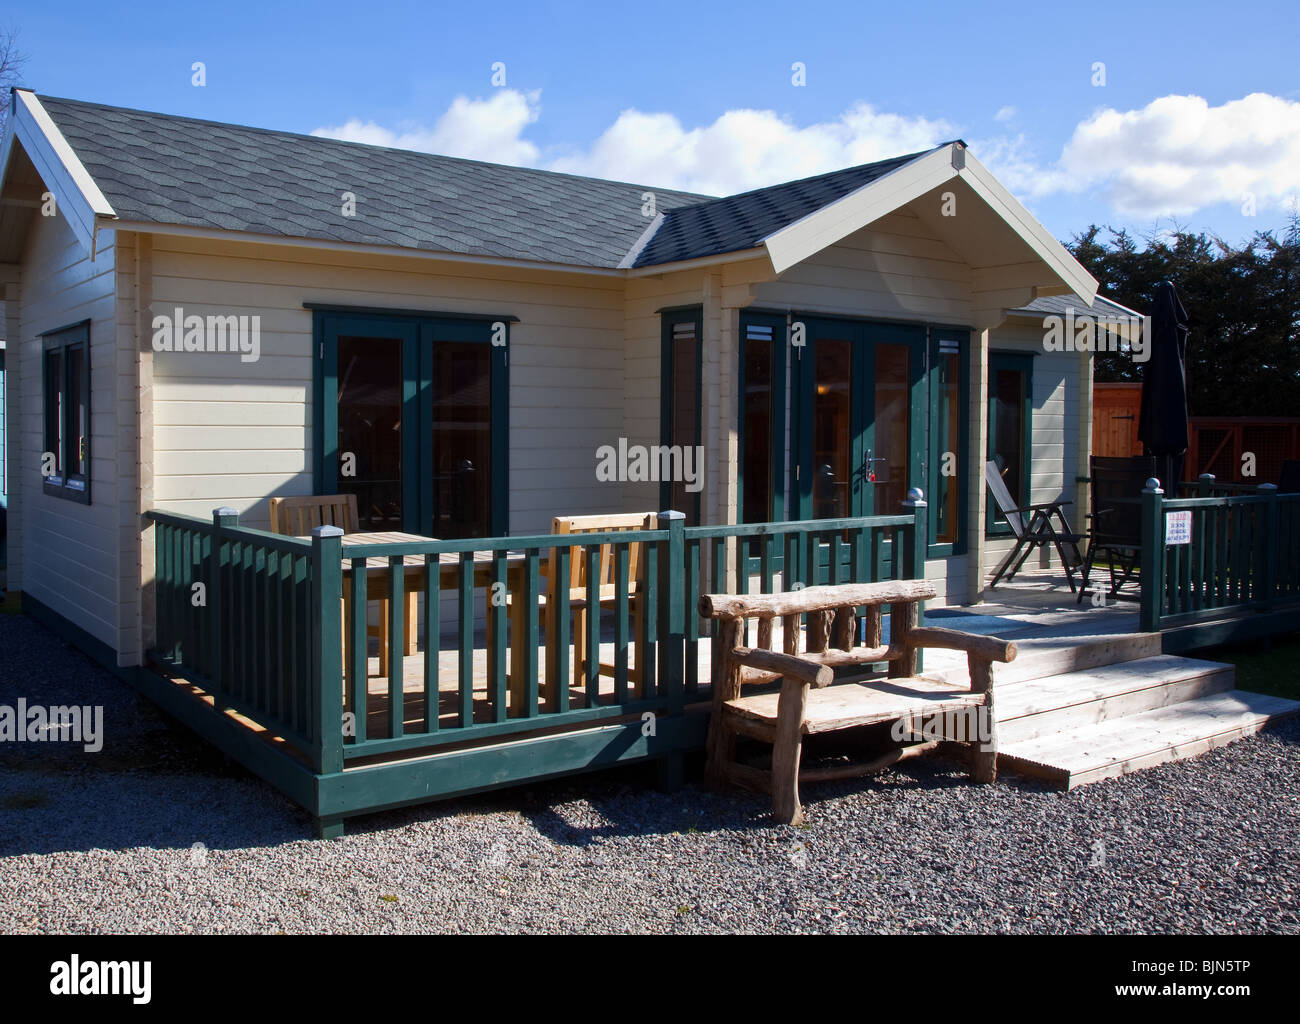 Wooden Garden Shed Outbuilding Chalet Summerhouse Or Cabin At Retail Unit  Royal Deeside Scotland Uk